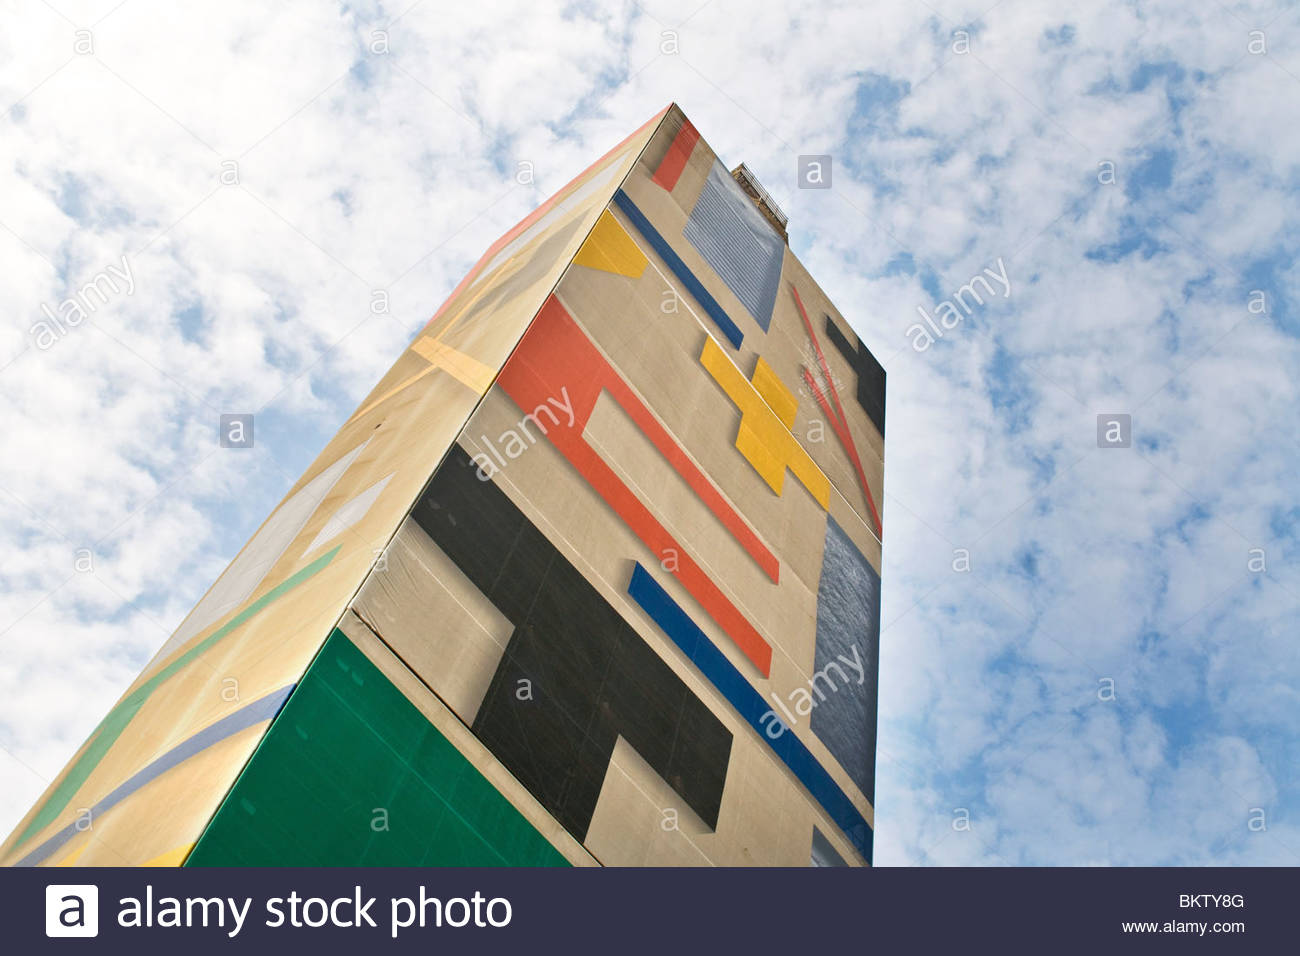 restoration of the Ghirlandina tower,scaffolding covered by a work by Mimmo Paladino,Modena,Emilia Romagna,Italy Stock Photo